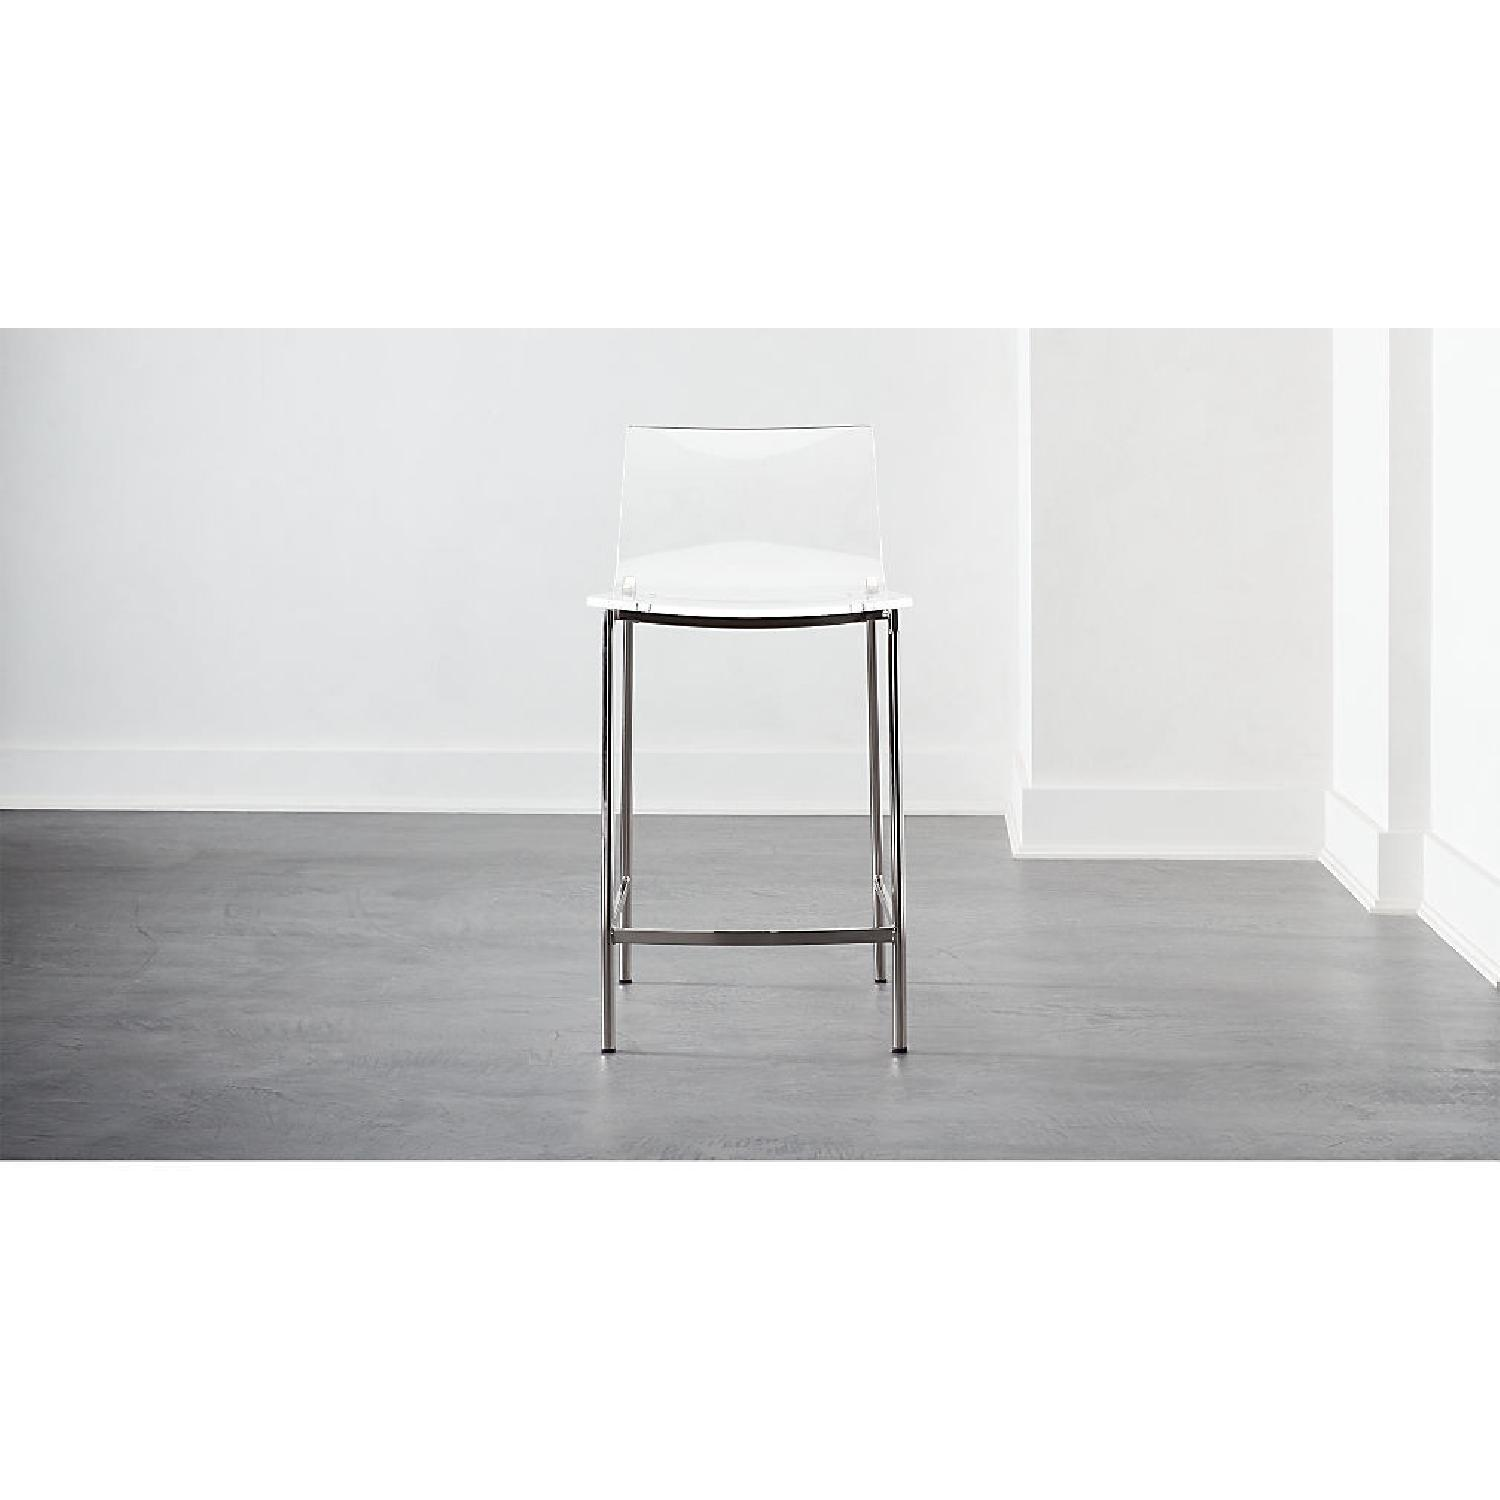 CB2 Clear Barstools in Nickel Finish - image-1